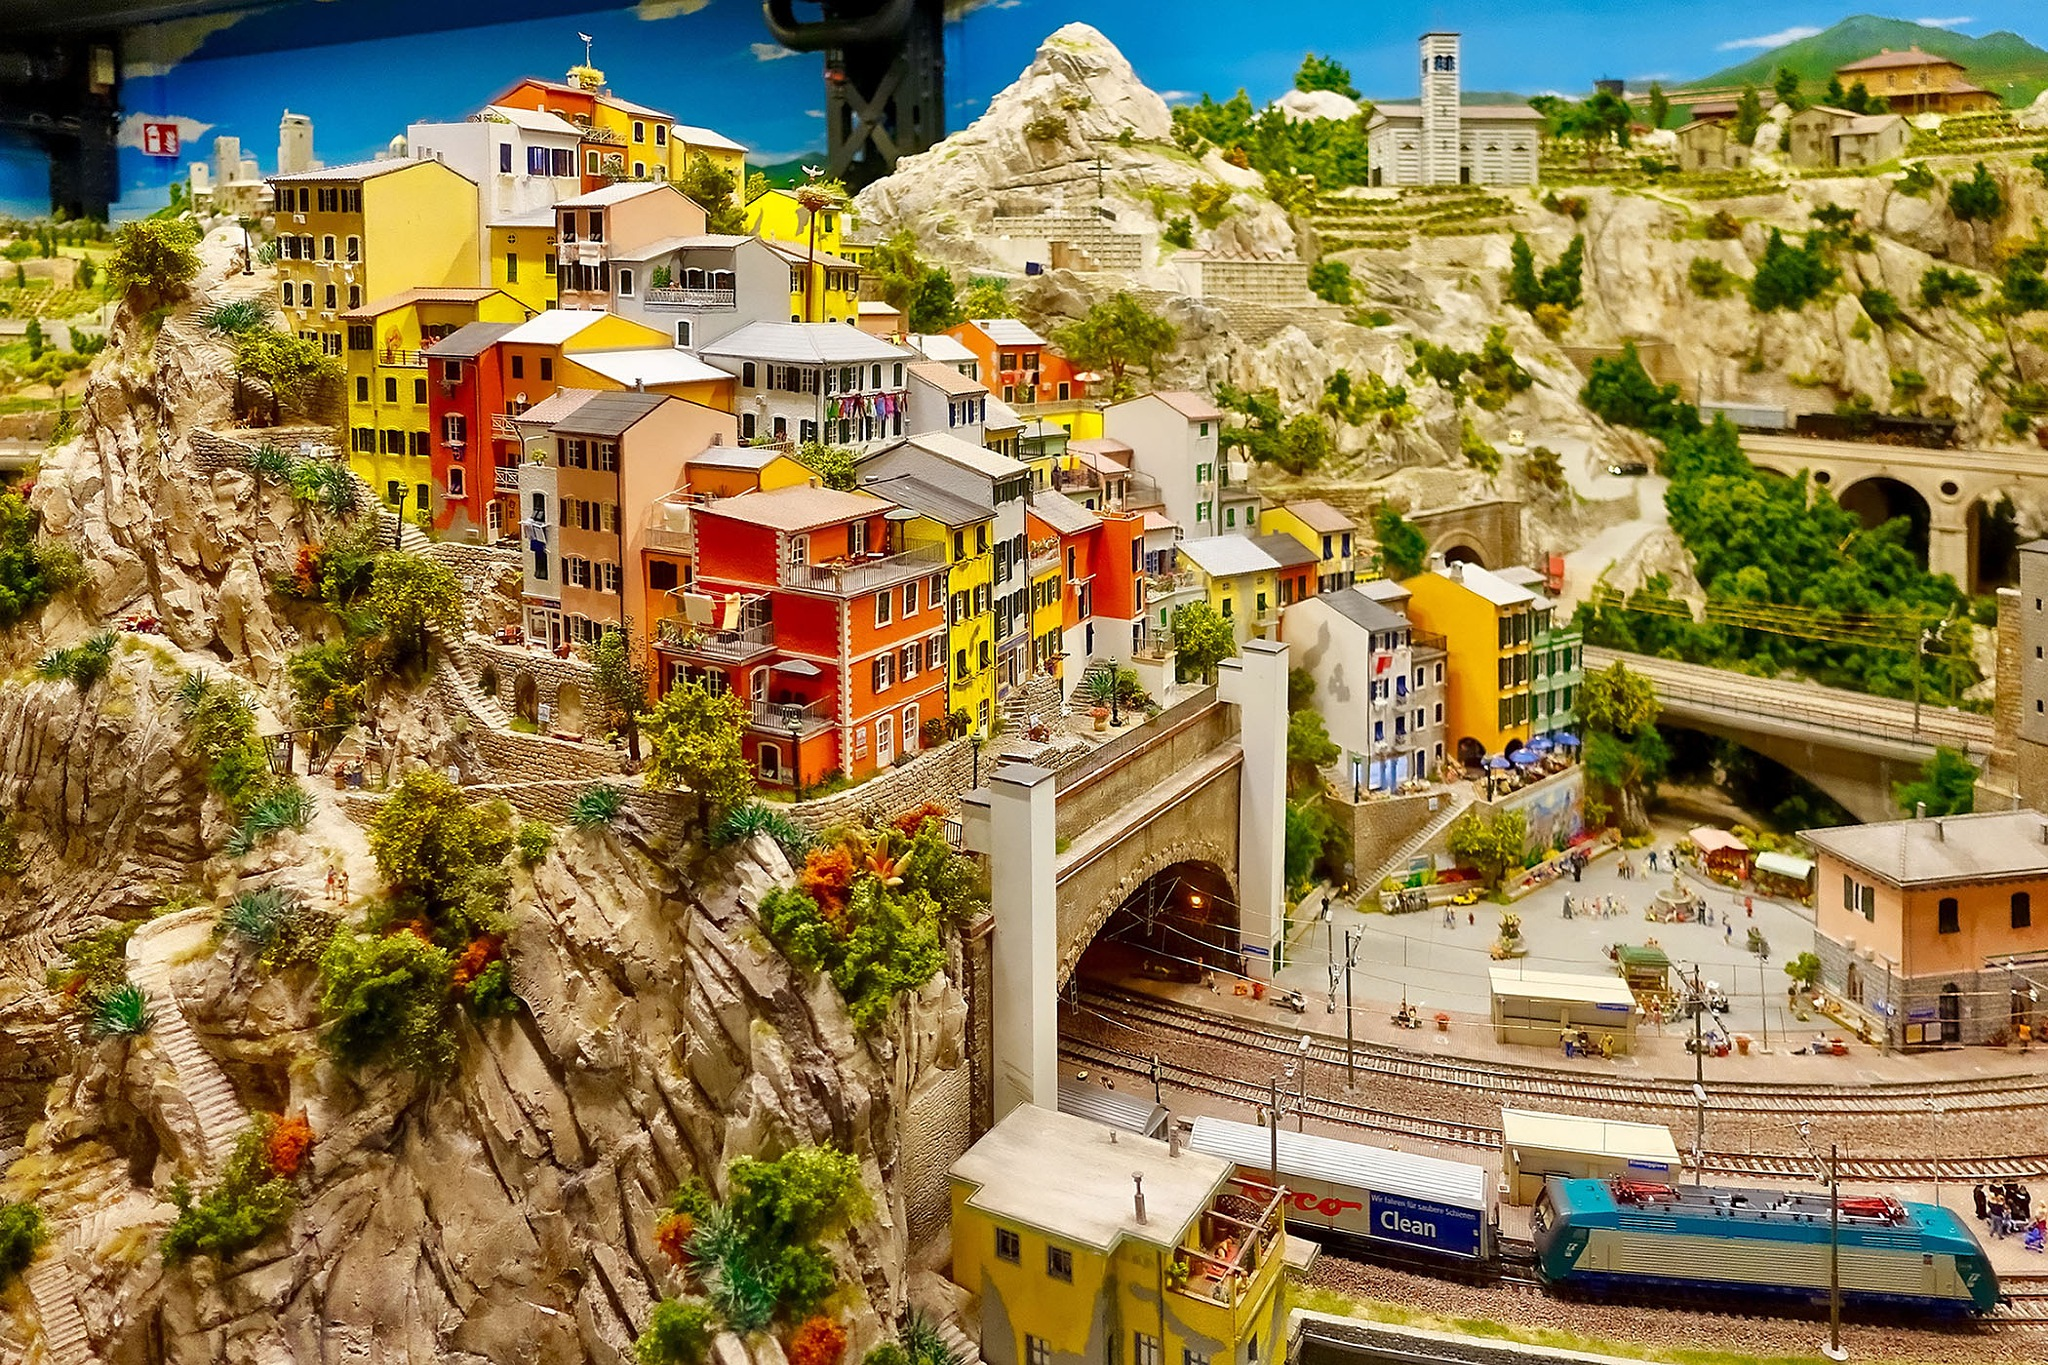 A part of the Italien section of the model railway «Miniatur Wunderland» in Hamburg, Germany. by Erwin Widmer